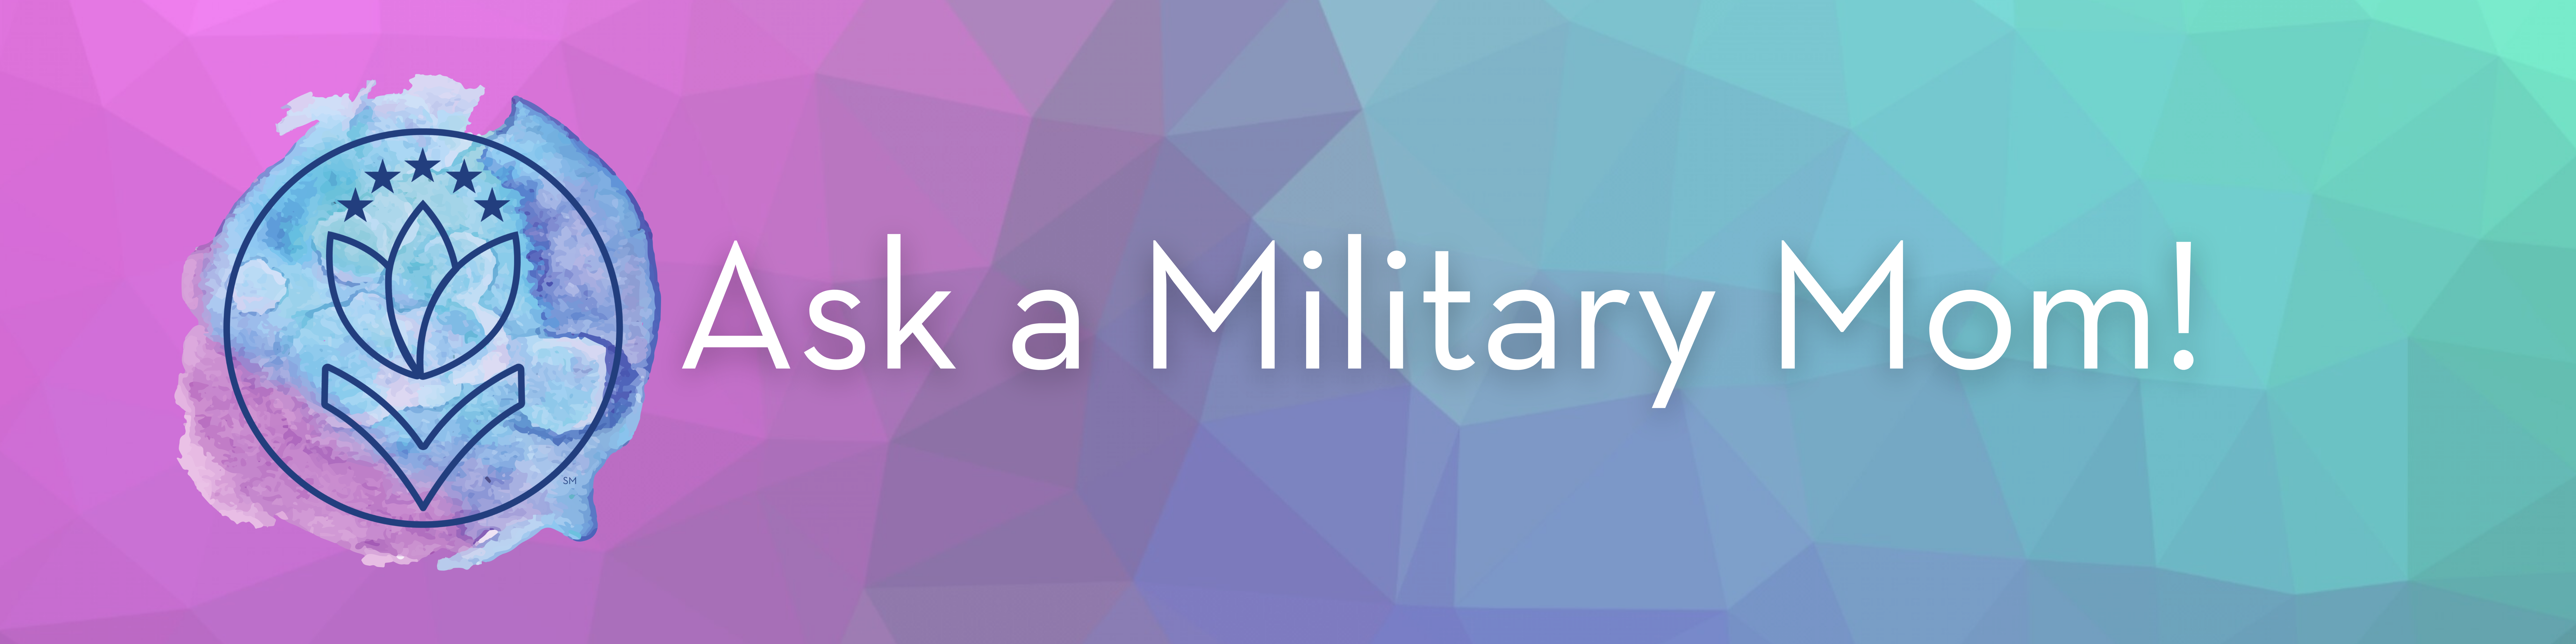 Ask a Military Mom! banner image in watercolor design